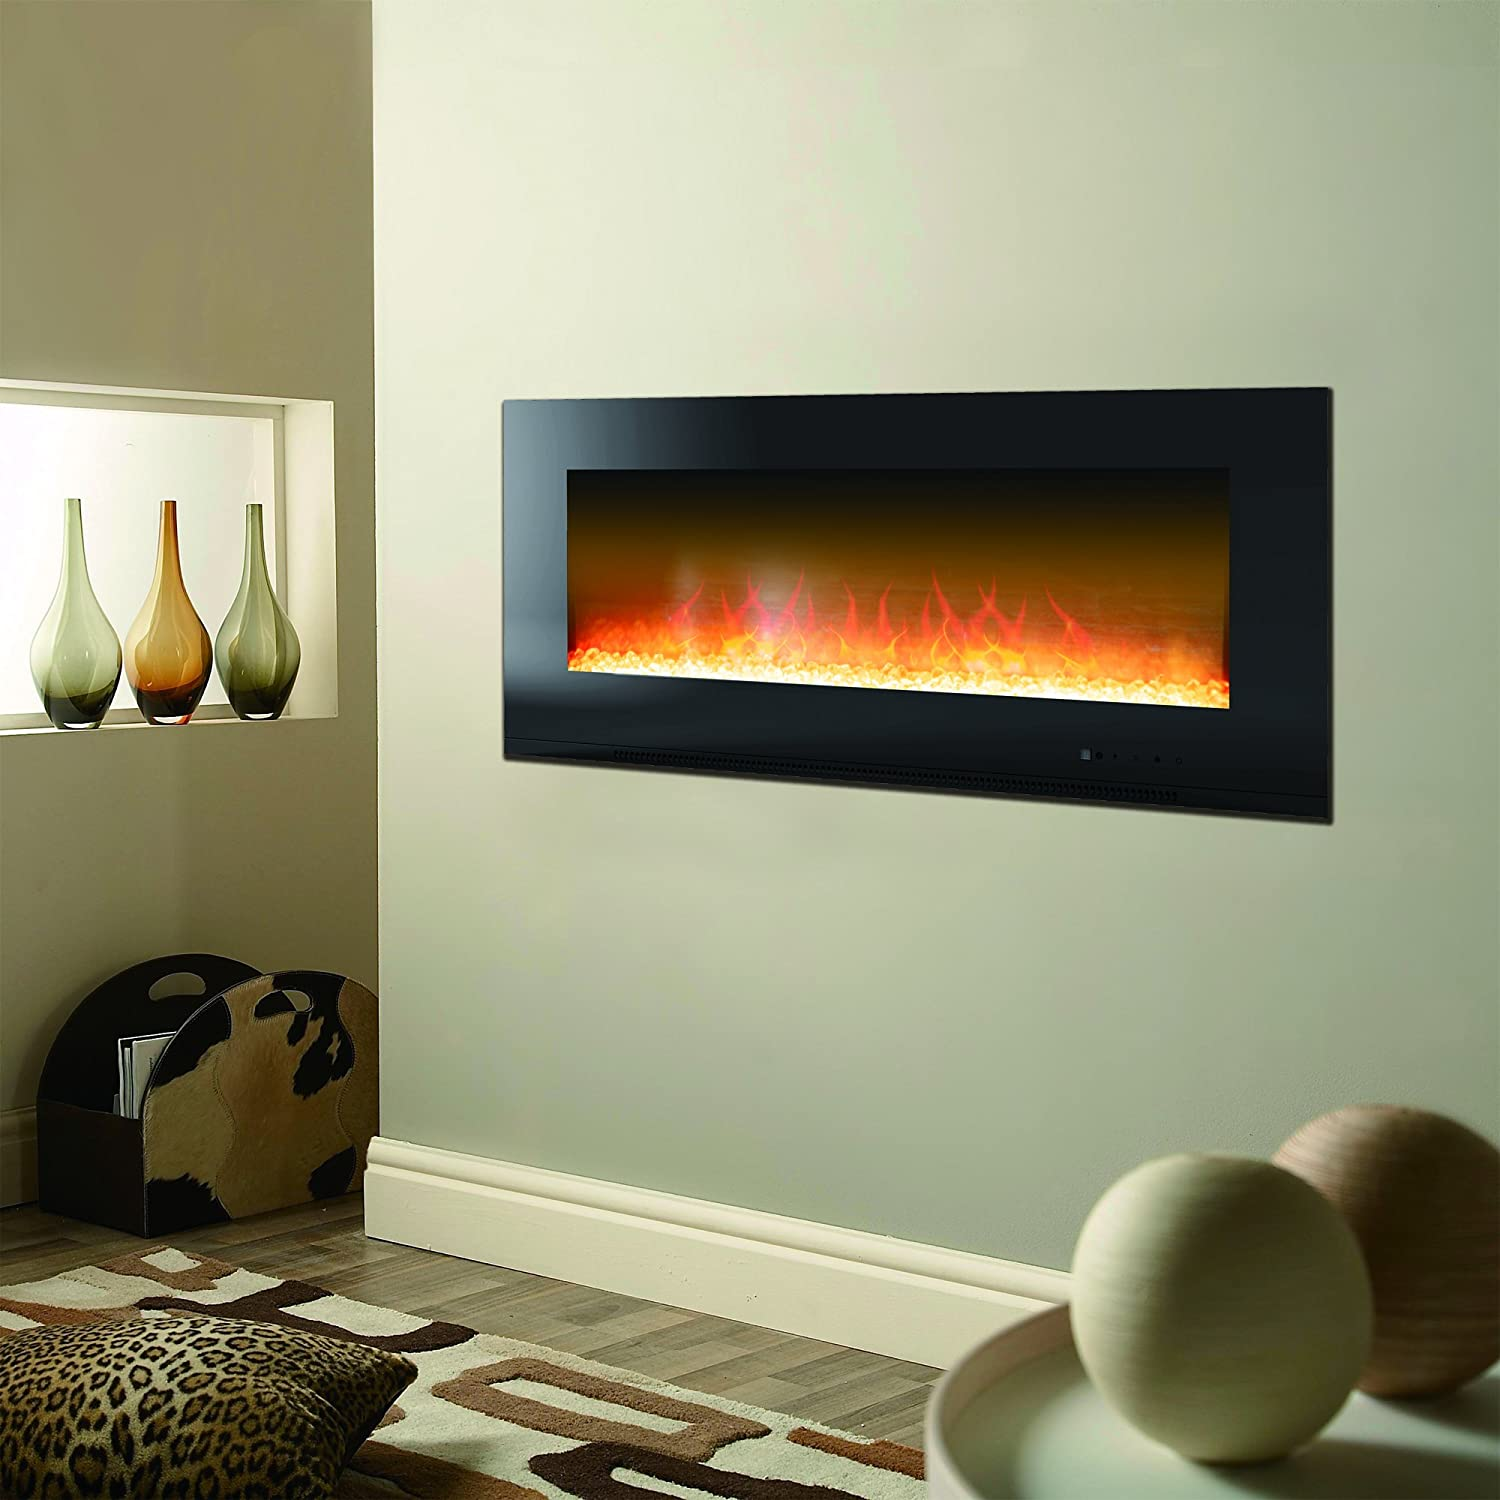 Cambridge Metropolitan 56 In. Wall-Mount Electronic Fireplace with Flat Panel and Crystal Rocks